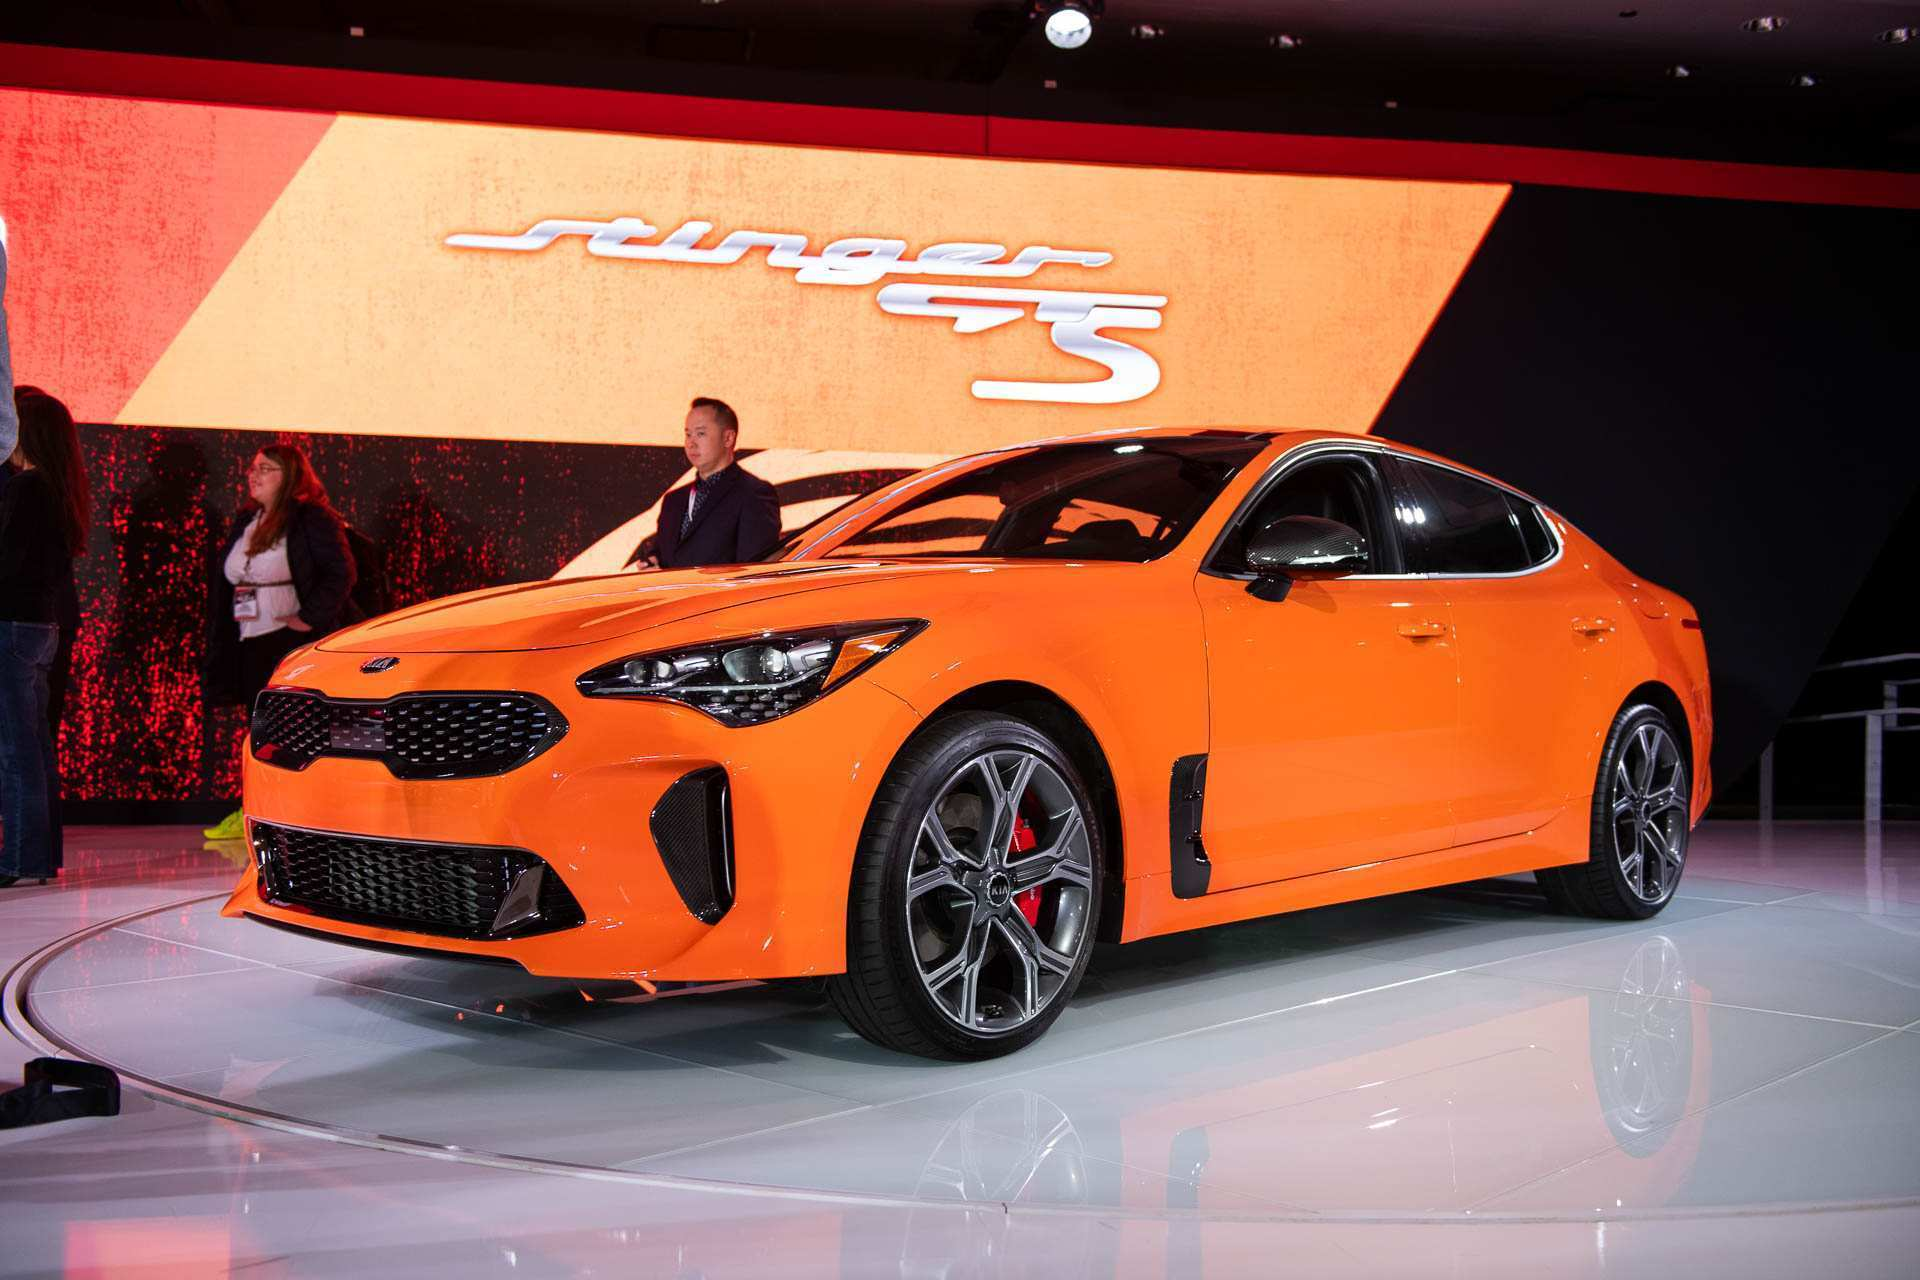 73 All New Kia Stinger 2020 Update Images